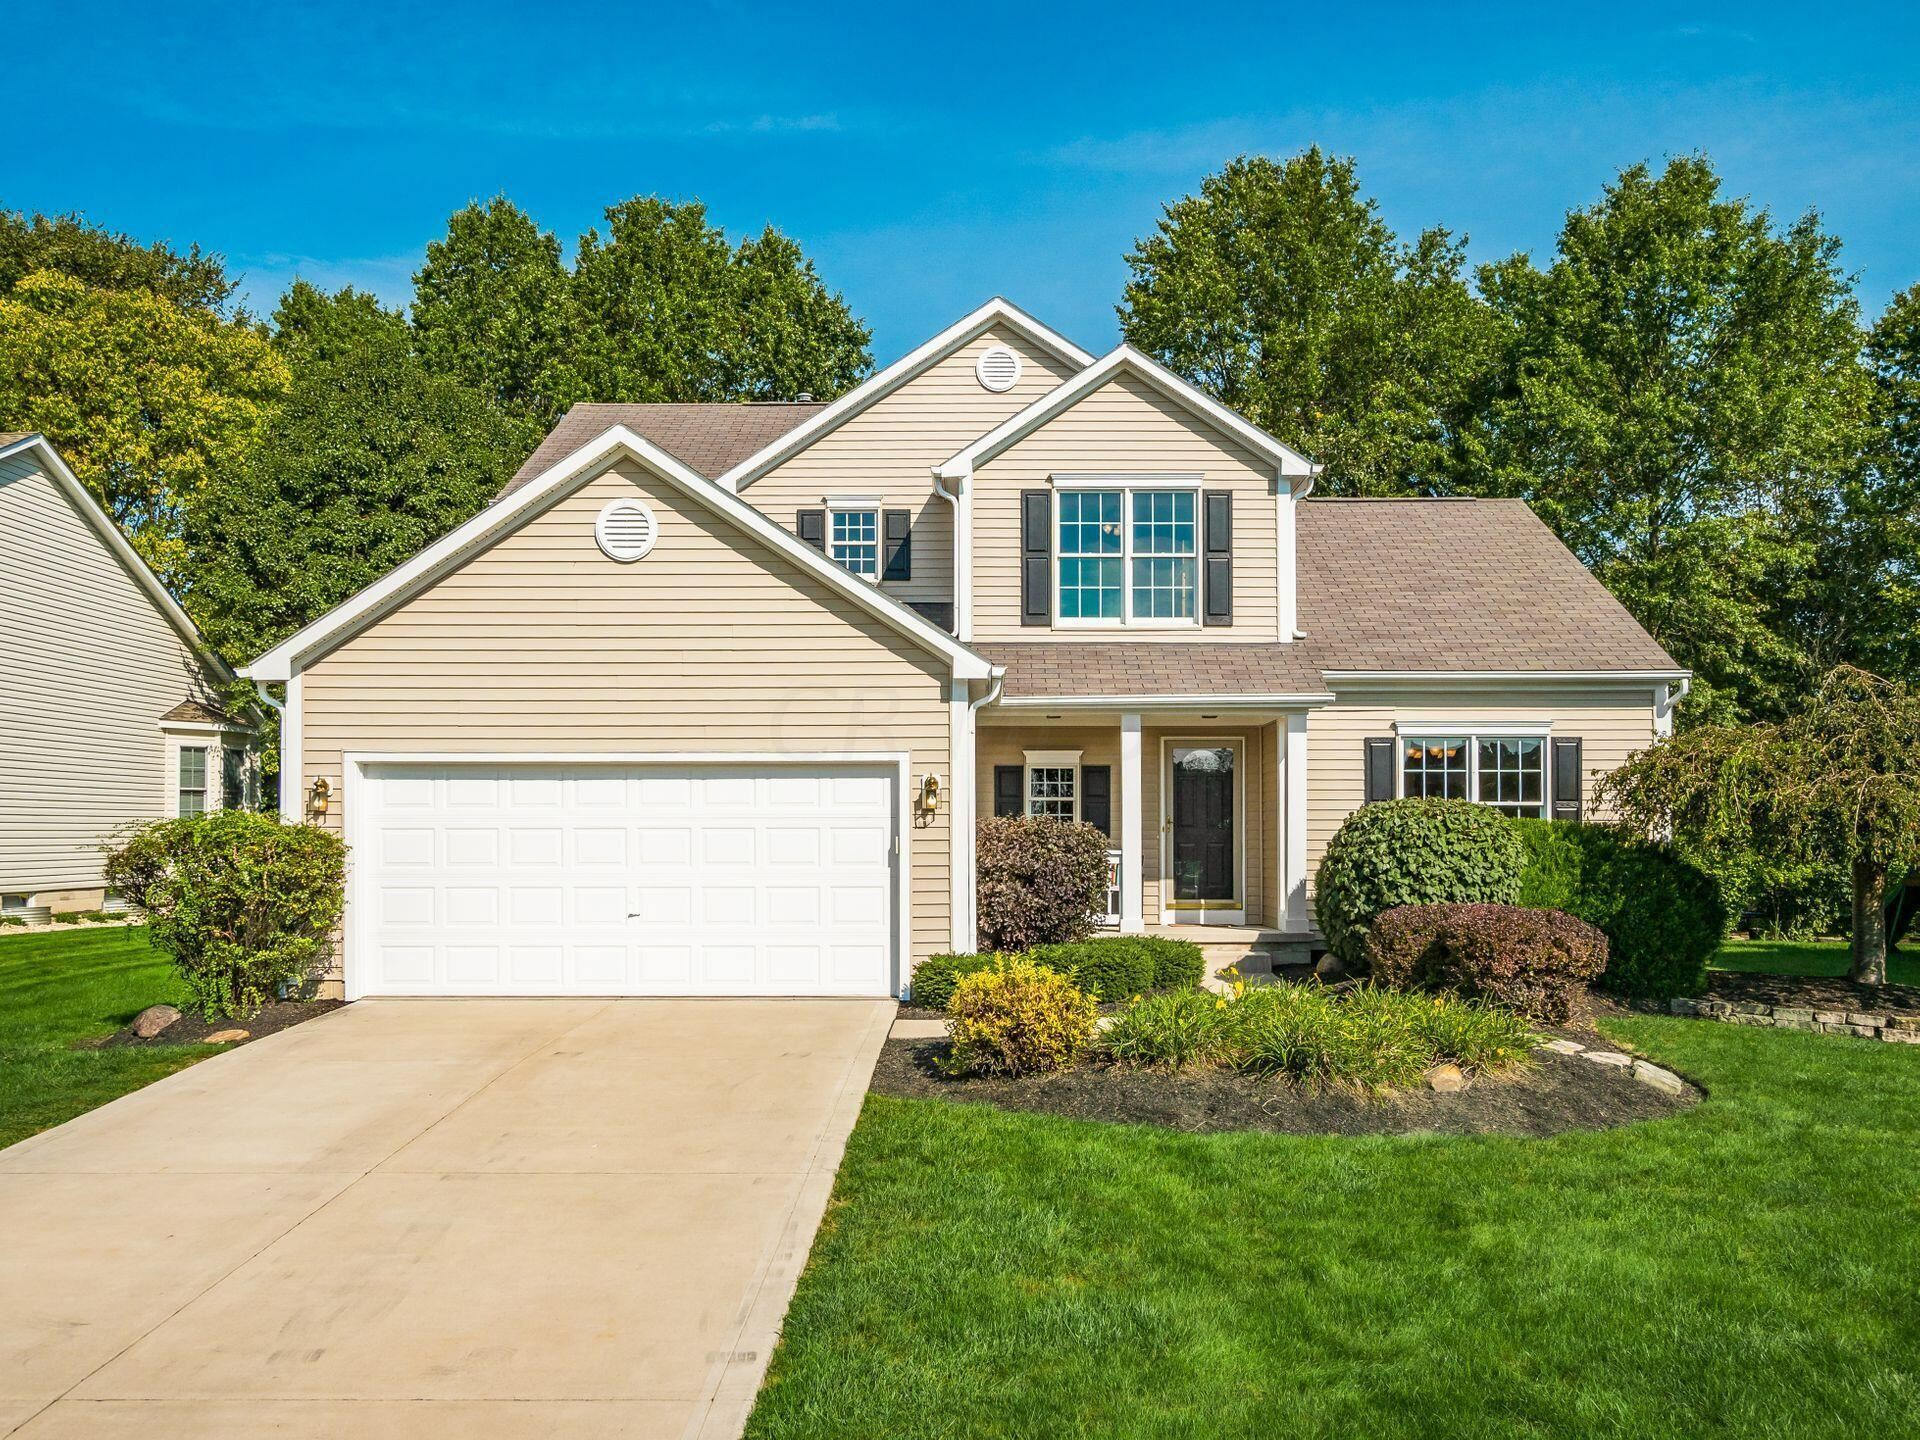 Photo of 7289 Saddlewood Drive, Westerville, OH 43082 (MLS # 221040494)